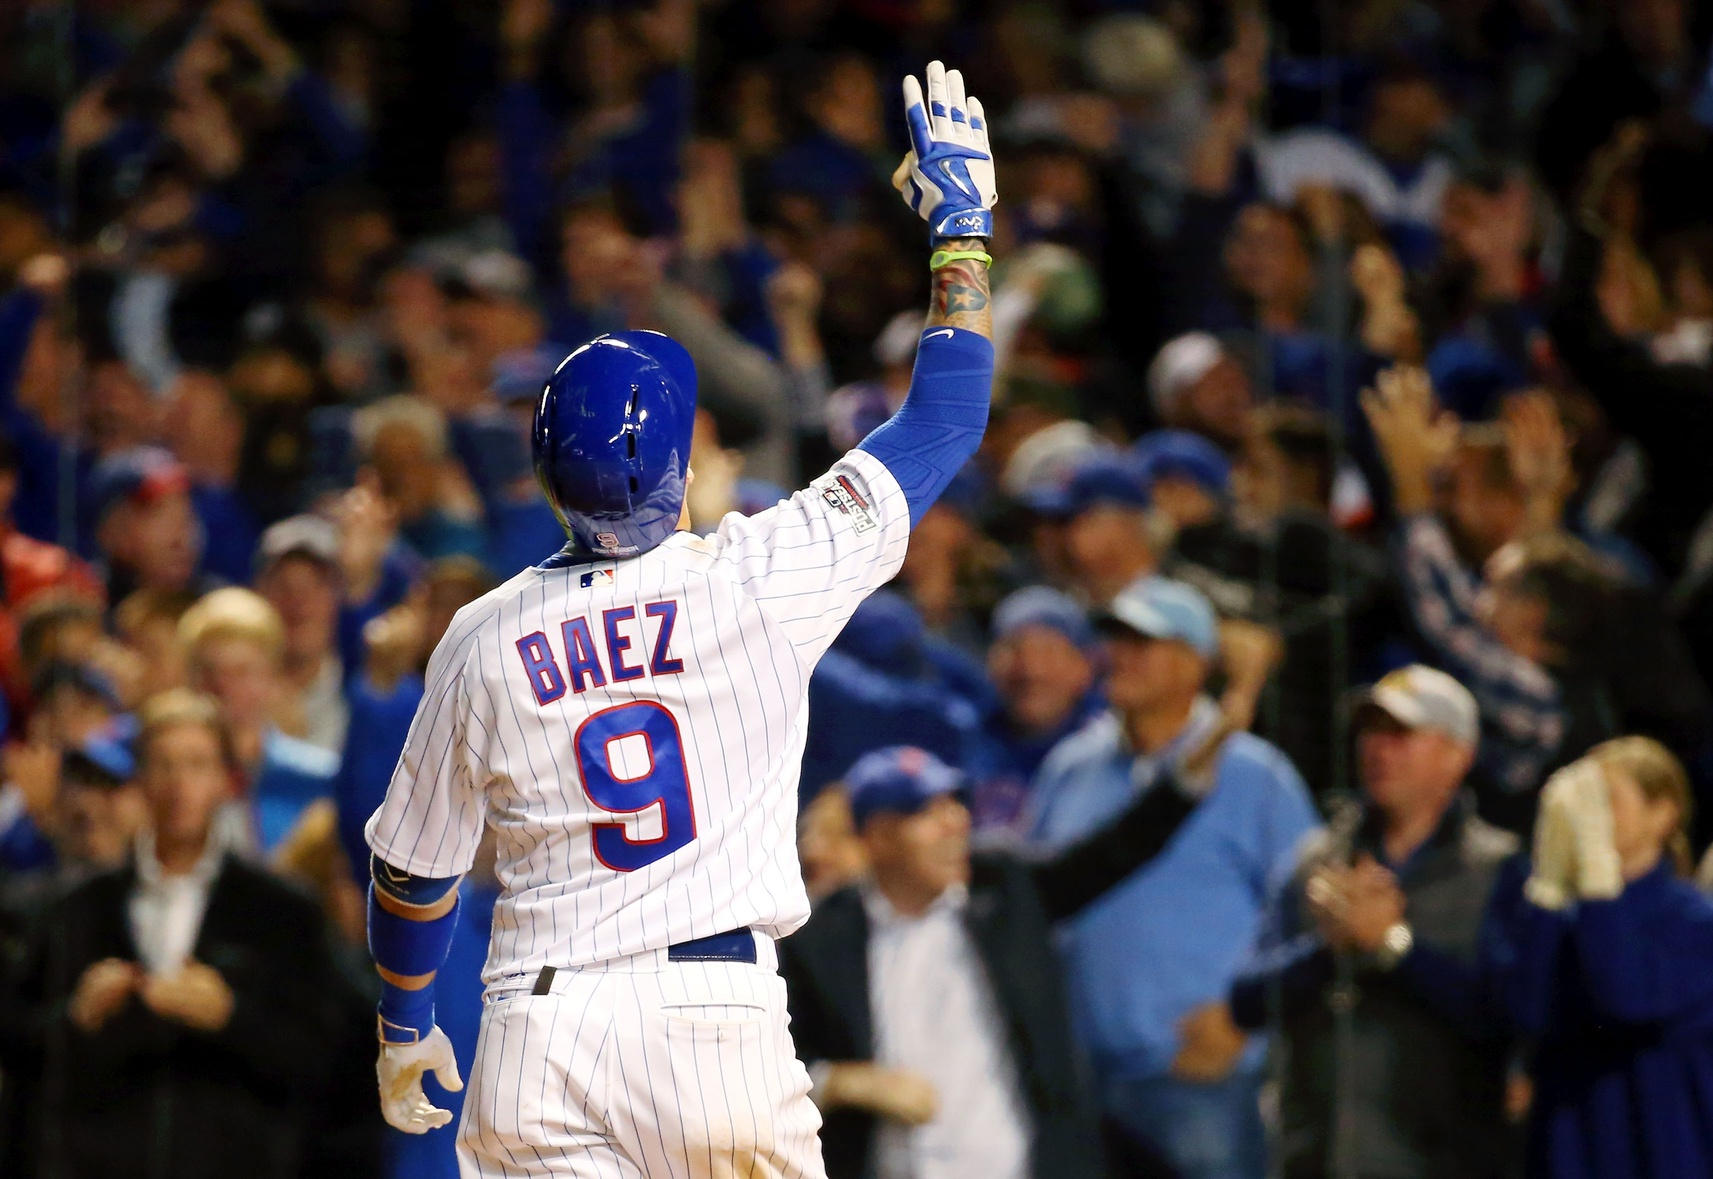 Cubs open NLDS with win over Giants